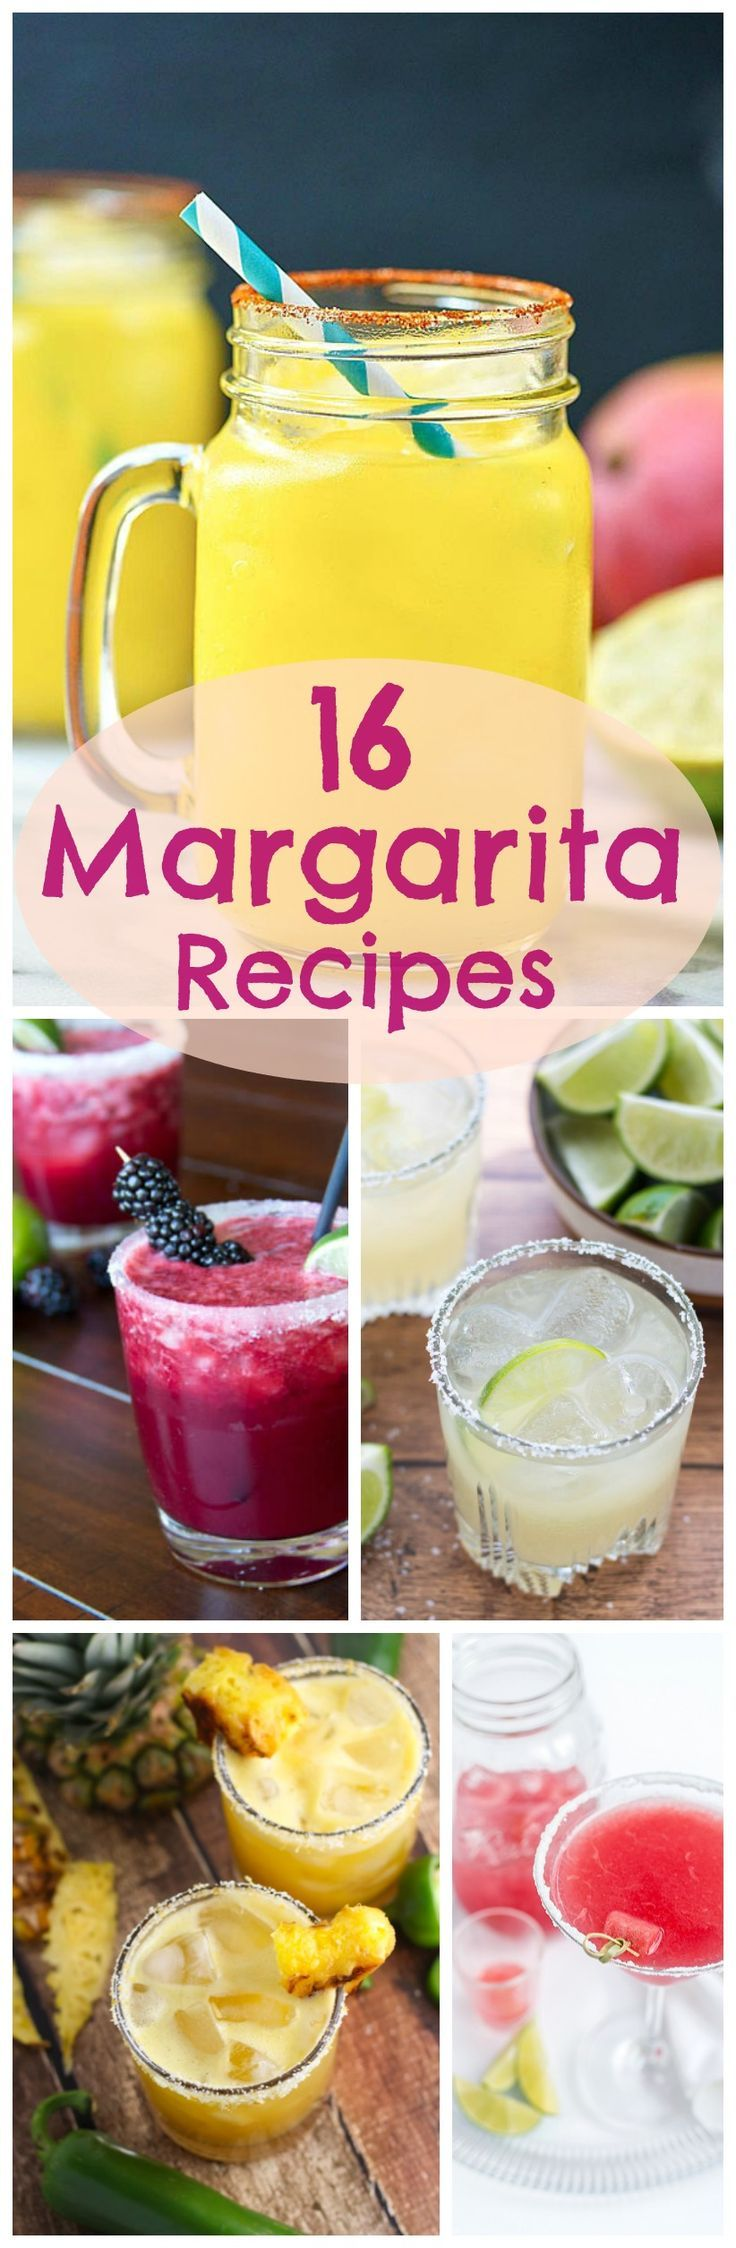 Enjoy these 16 Margarita Recipes as part of your Cinco de Mayo celebration!  Is there really a better excuse to have a few (or more)?  The margarita is one of my favorite cocktails and I love all the fresh fruit flavors for spring.  I only wish I could try ALL of these today!  You can...Read More »: